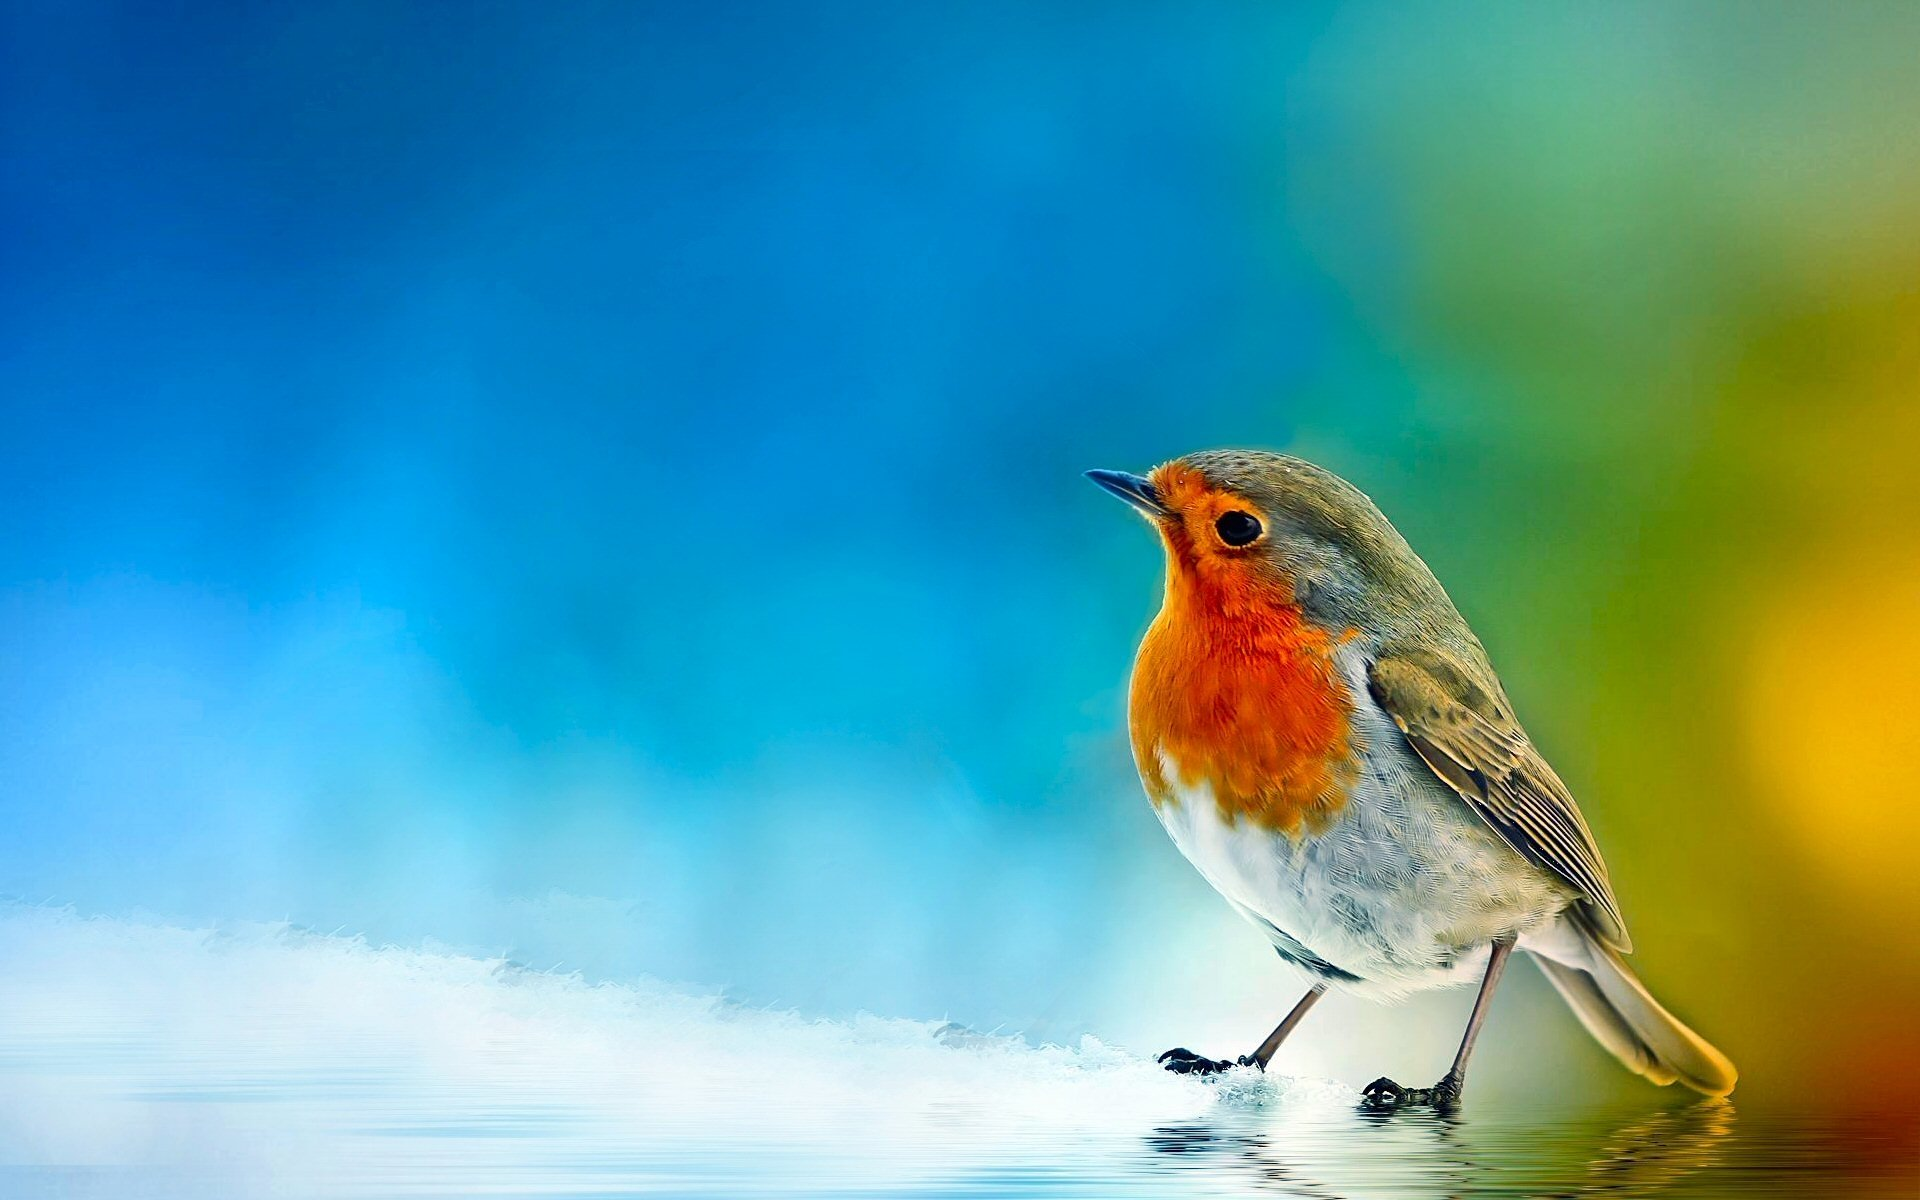 Bird Wallpaper 1825 Bird Hd Wallpapers  Backgrounds  Wallpaper Abyss